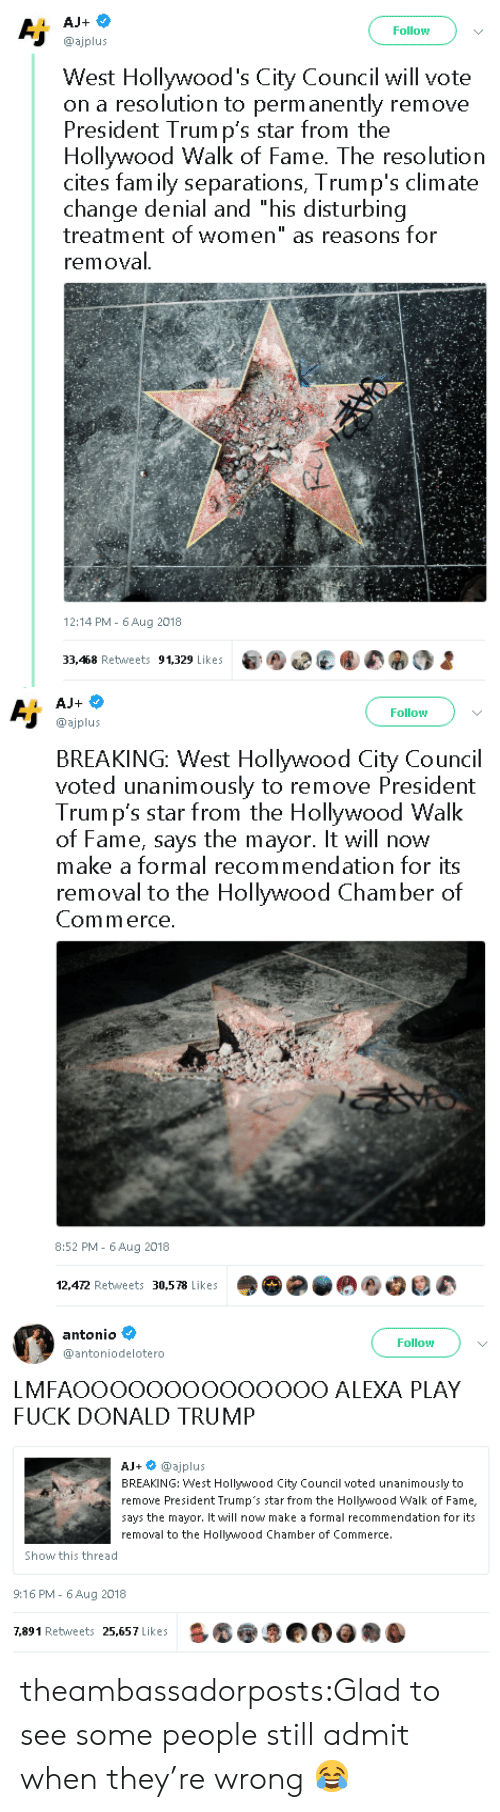 "Donald Trump, Fam, and Tumblr: Follow  @ajplus  West Hollywood's City Council will vote  on a resolution to perm anently remove  President Trum p's star from the  Hollywood Walk of Fame. The resolution  cites fam ily separations, Trump's climate  change denial and ""his disturbing  treatment of women"" as reasons for  removal  12:14 PM- 6Aug 2018  33,468 Retweets 91,329 Likes   Follow  @ajplus  BREAKING: West Hollywood City Council  voted unanimously to remove President  Trum p's star from the Hollywood Walk  of Fame, says the mayor. It will now  make a formal recommendation for its  removal to the Hollywood Chamber of  Commerce  8:52 PM - 6Aug 2018  12,472 Retweets 30,578 Likes   antonio  @antoniodelotero  Follow  LMFAOOOOOOOOOOOOOO ALEXA PLAY  FUCK DONALD TRUMP  AJ+ @ajplus  BREAKING: West Hollywood City Council voted unanimously to  remove President Trump's star from the Hollywood Walk of Fame,  says the mayor. It will now make a formal recommendation for its  removal to the Hollywood Chamber of Commerce.  Show this thread  9:16 PM- 6 Aug 2018  7,891 Retweets 25,657 Likes theambassadorposts:Glad to see some people still admit when they're wrong 😂"